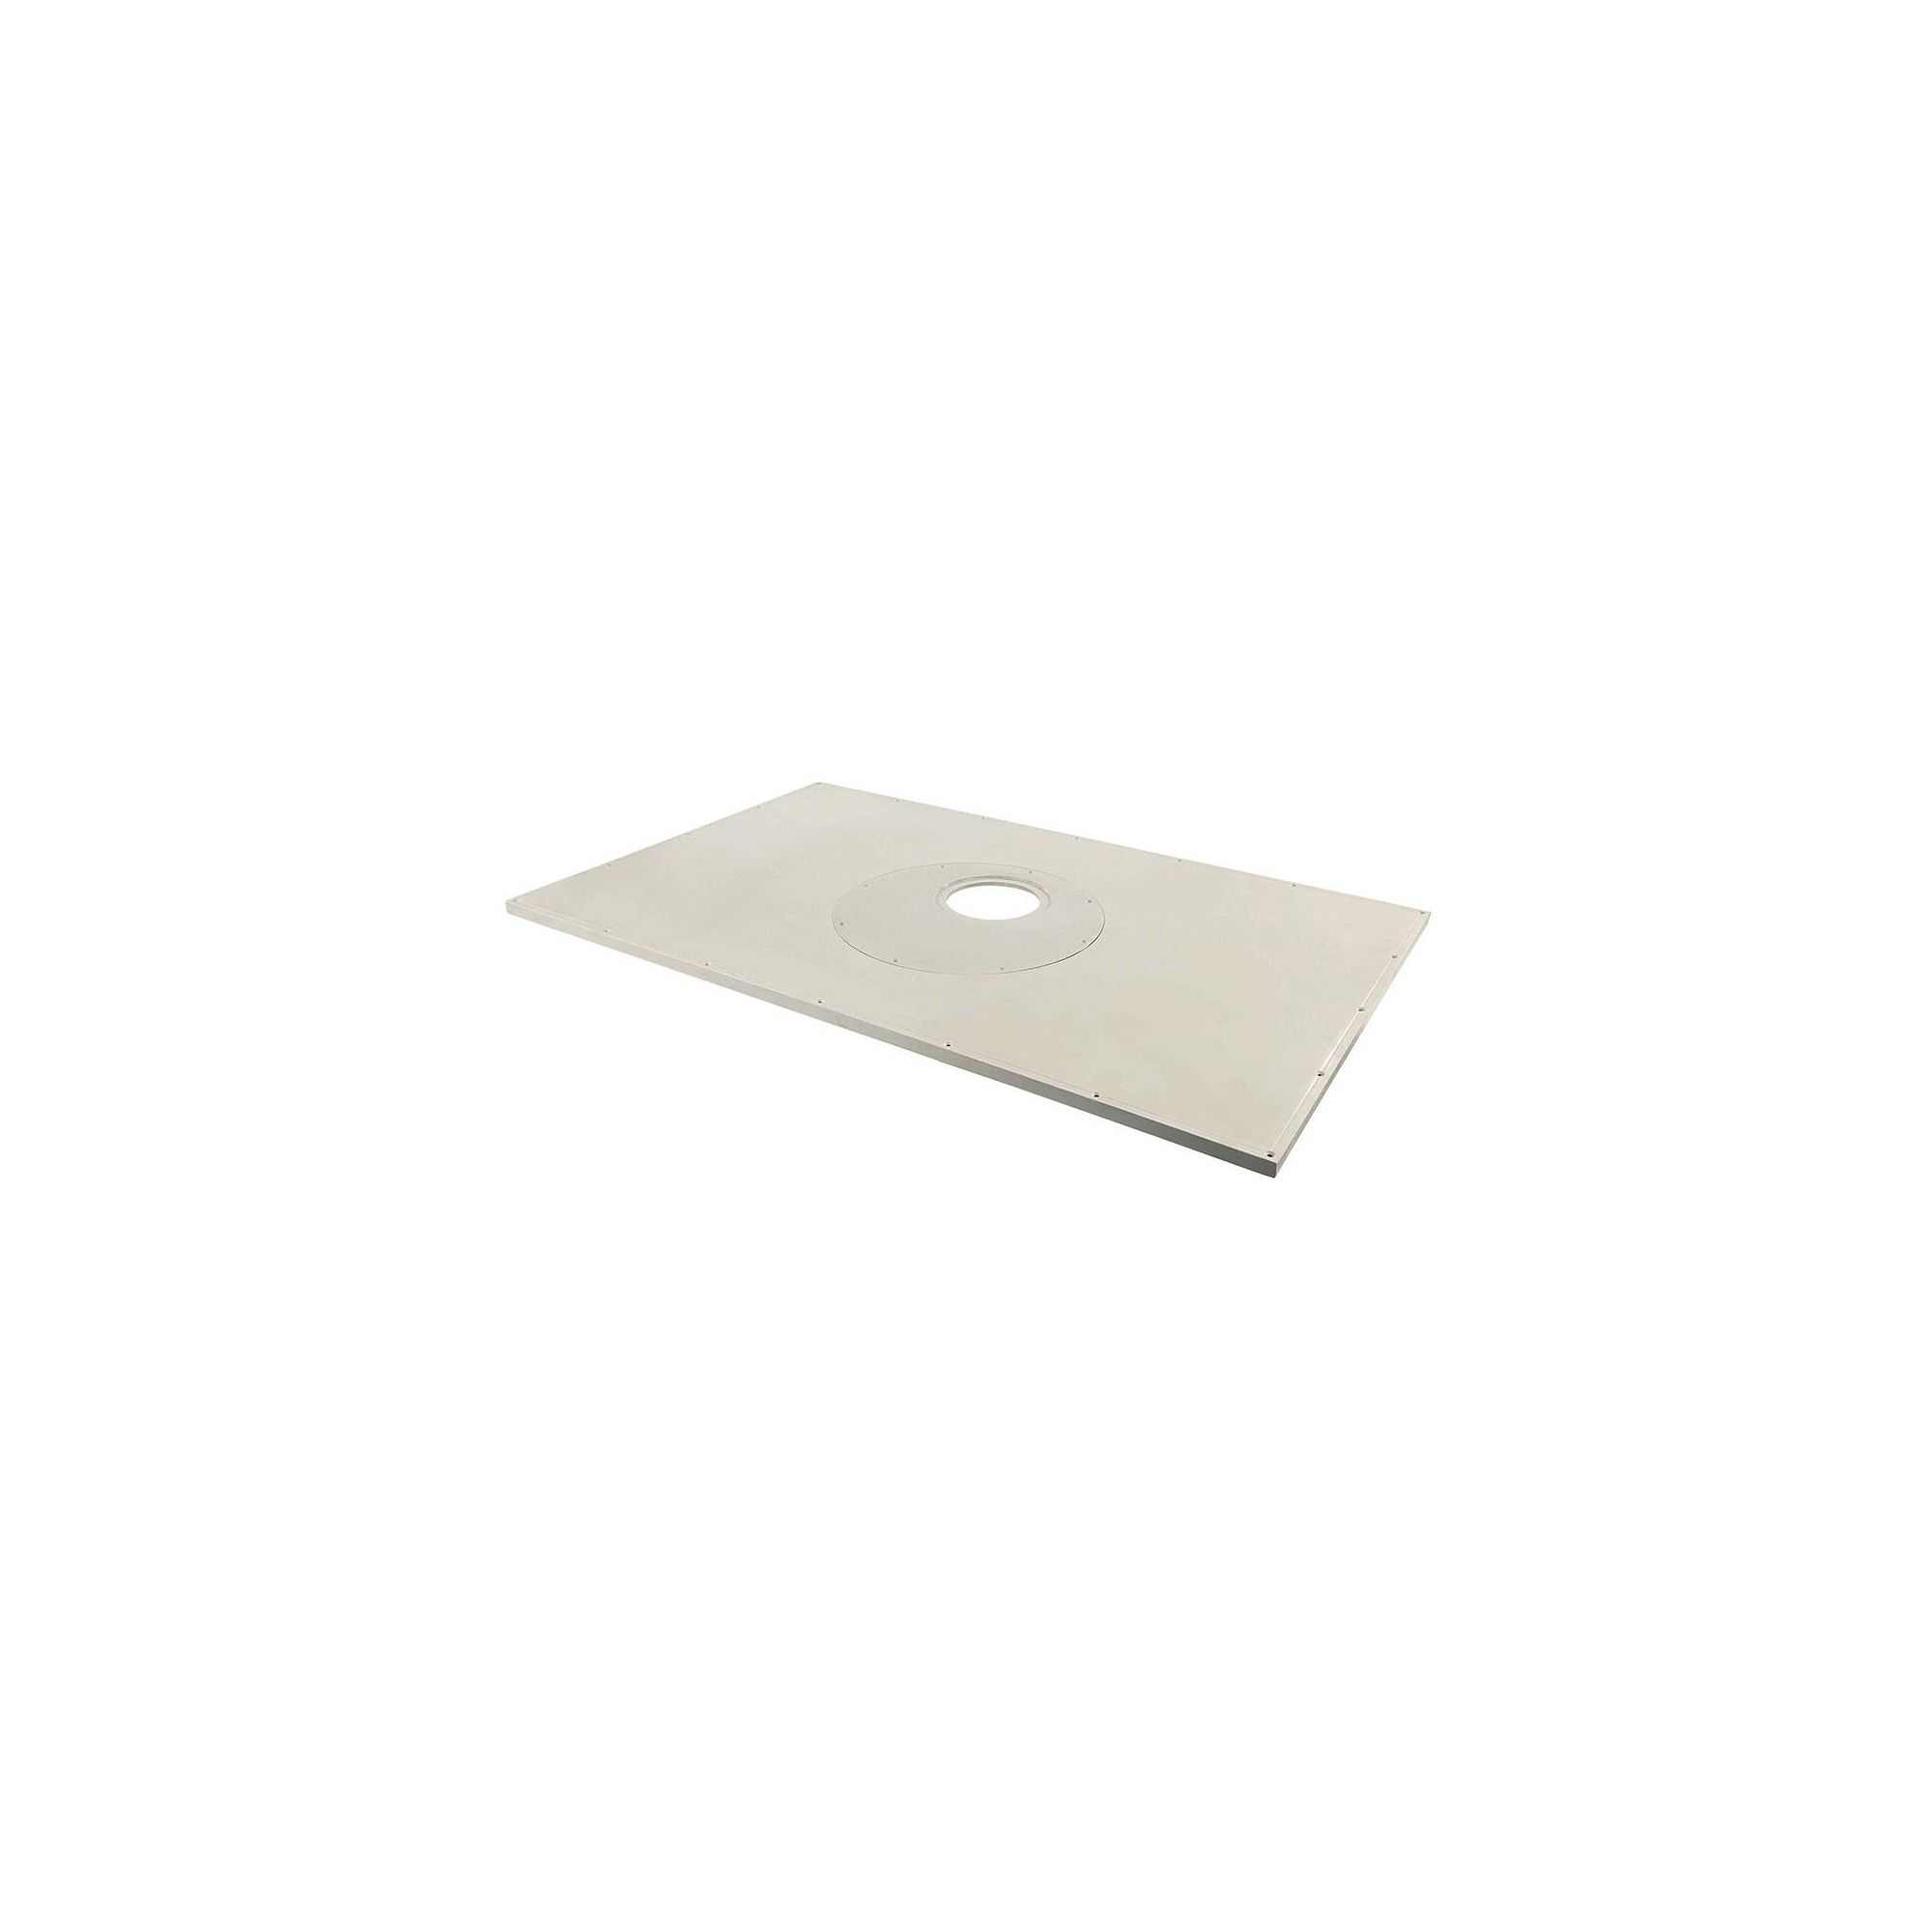 Impey Level-Dec Advance Wet Room Floor Former 1500mm x 1200mm at Tesco Direct